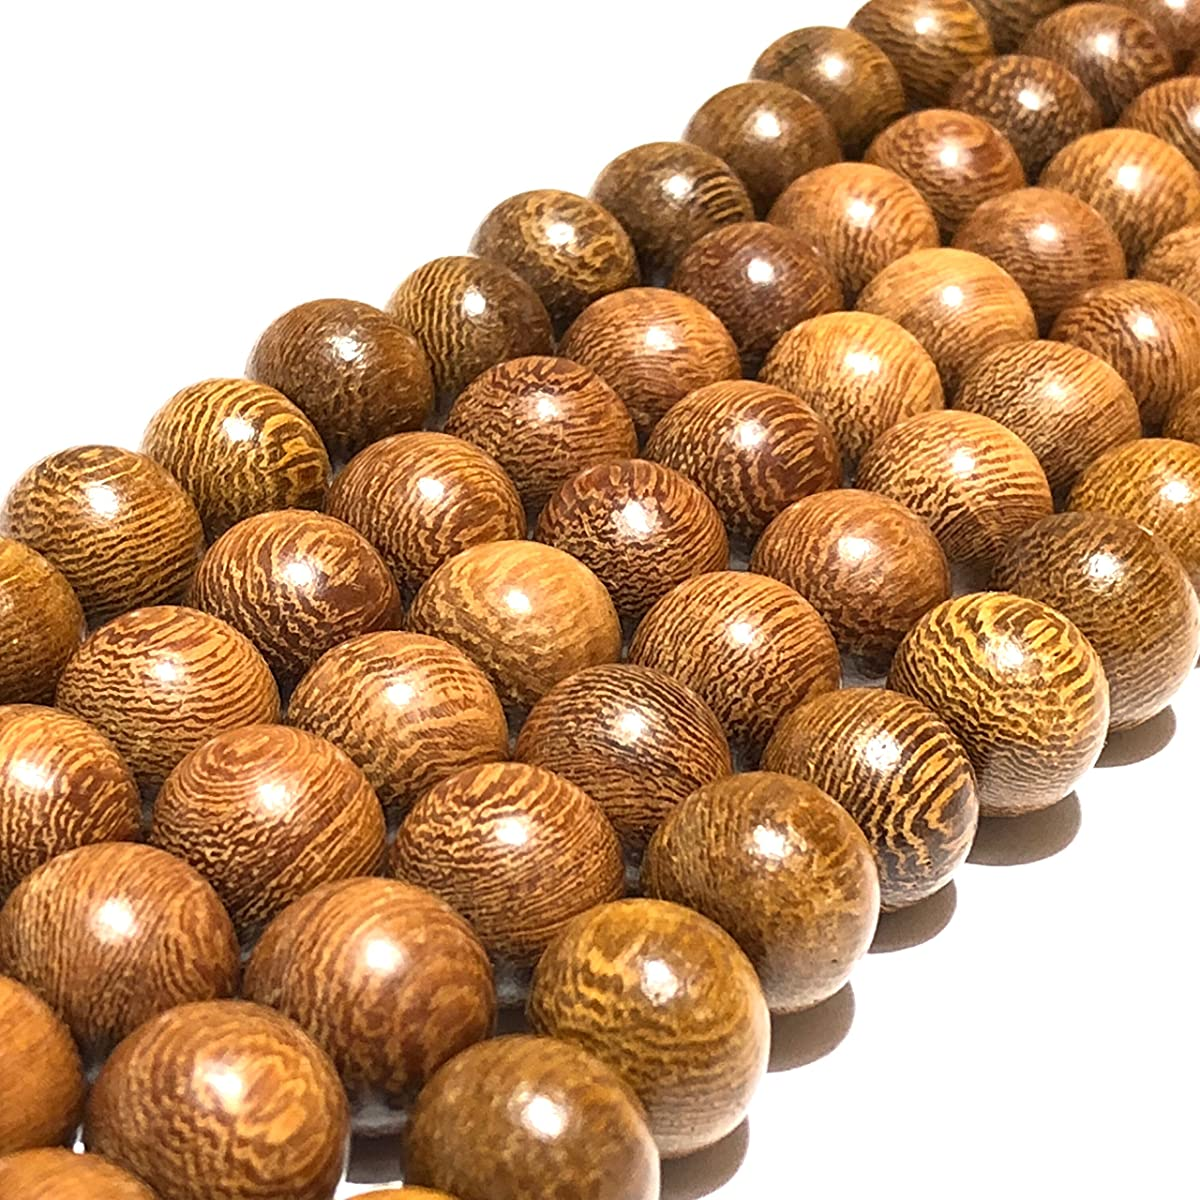 [ABCgems] Essential Oil Diffuser Kakawate AKA Madre De Cacao Hardwood (Exquisite Wood Grain) 10mm Matte Finished Round Wood Beads for Beading & Jewelry Making (No Wax)